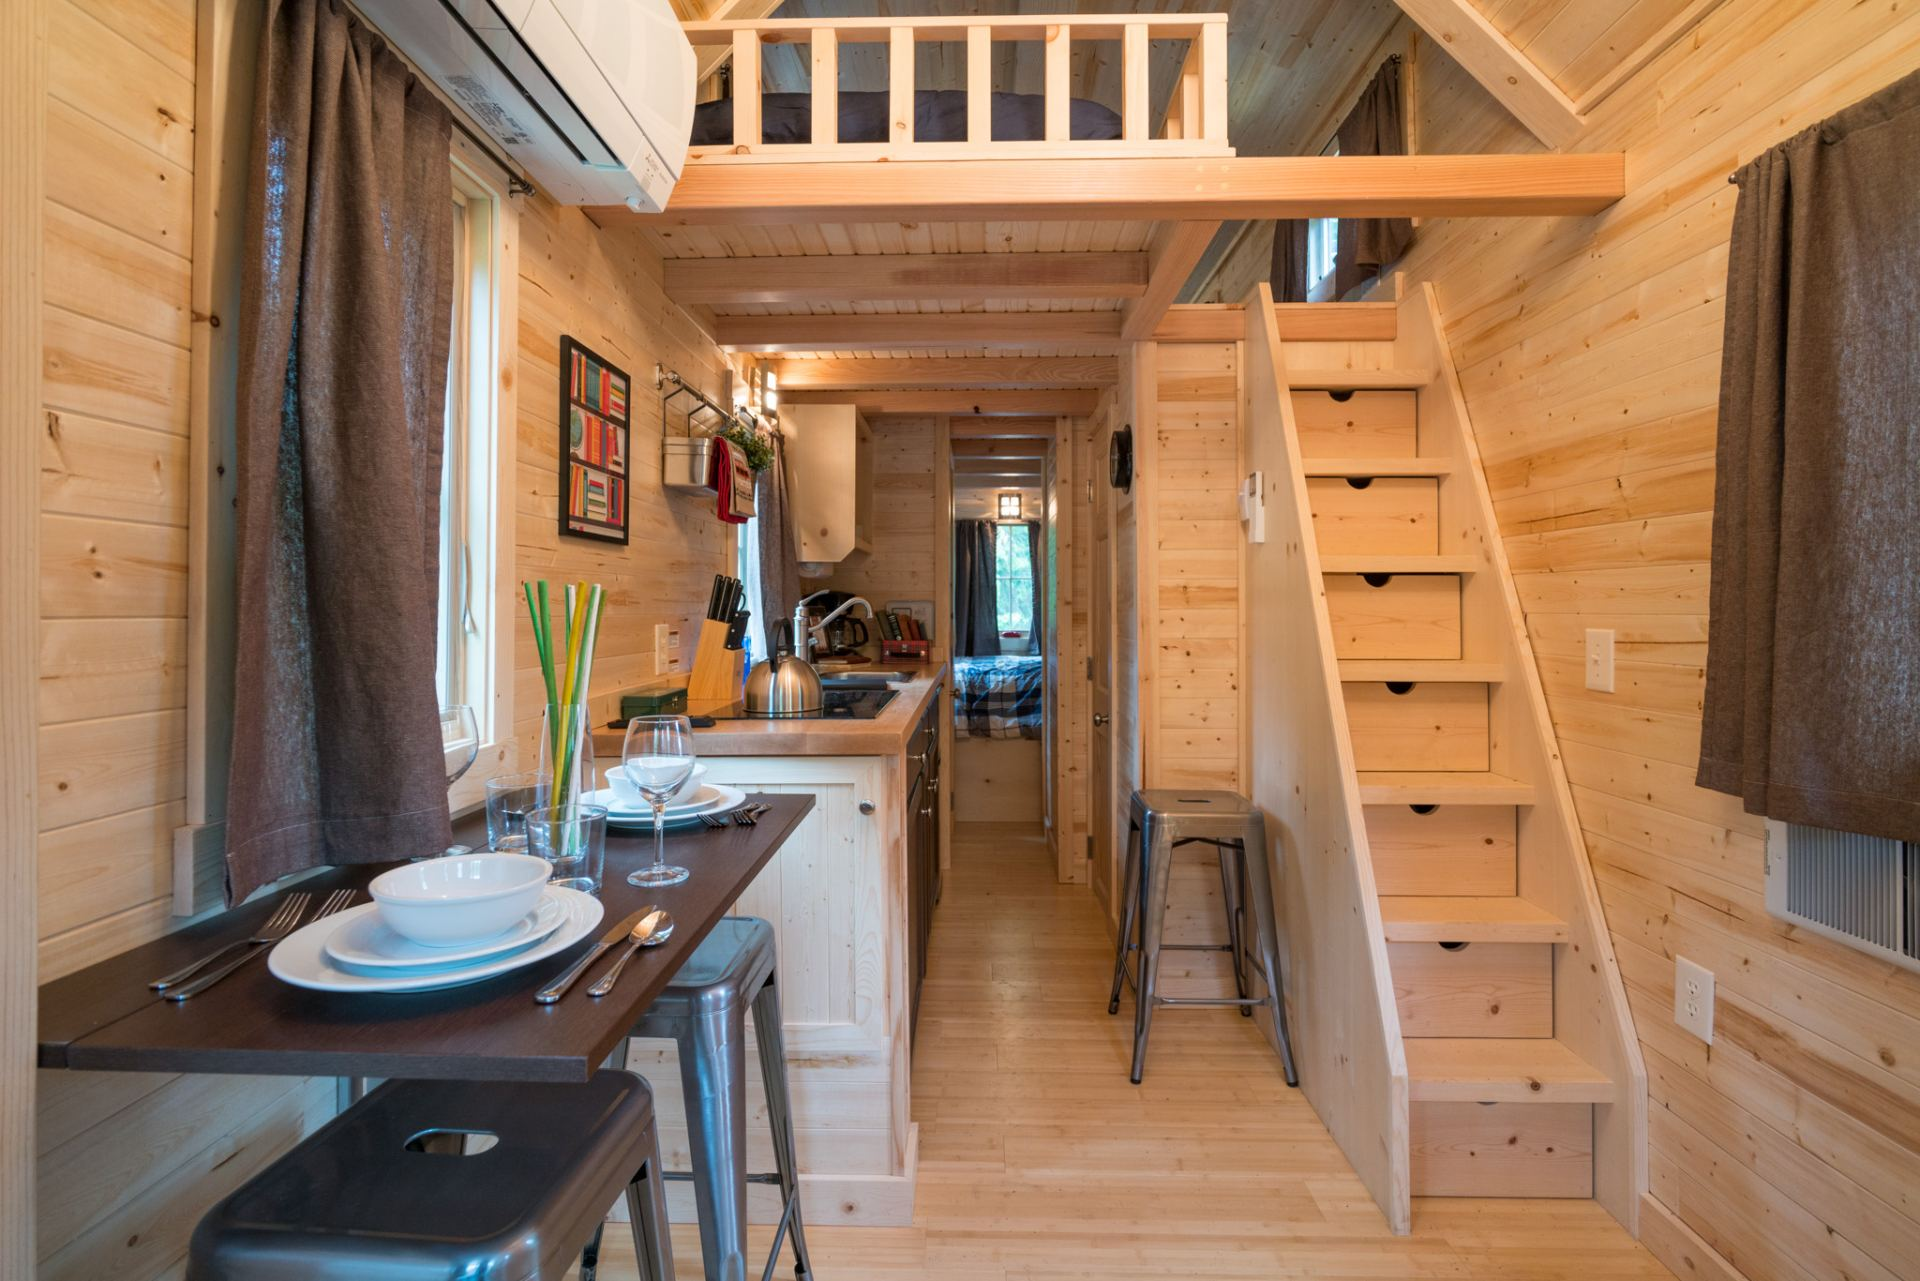 Prime Lincoln Tiny House Rental At Mt Hood Tiny House Village In Oregon Largest Home Design Picture Inspirations Pitcheantrous